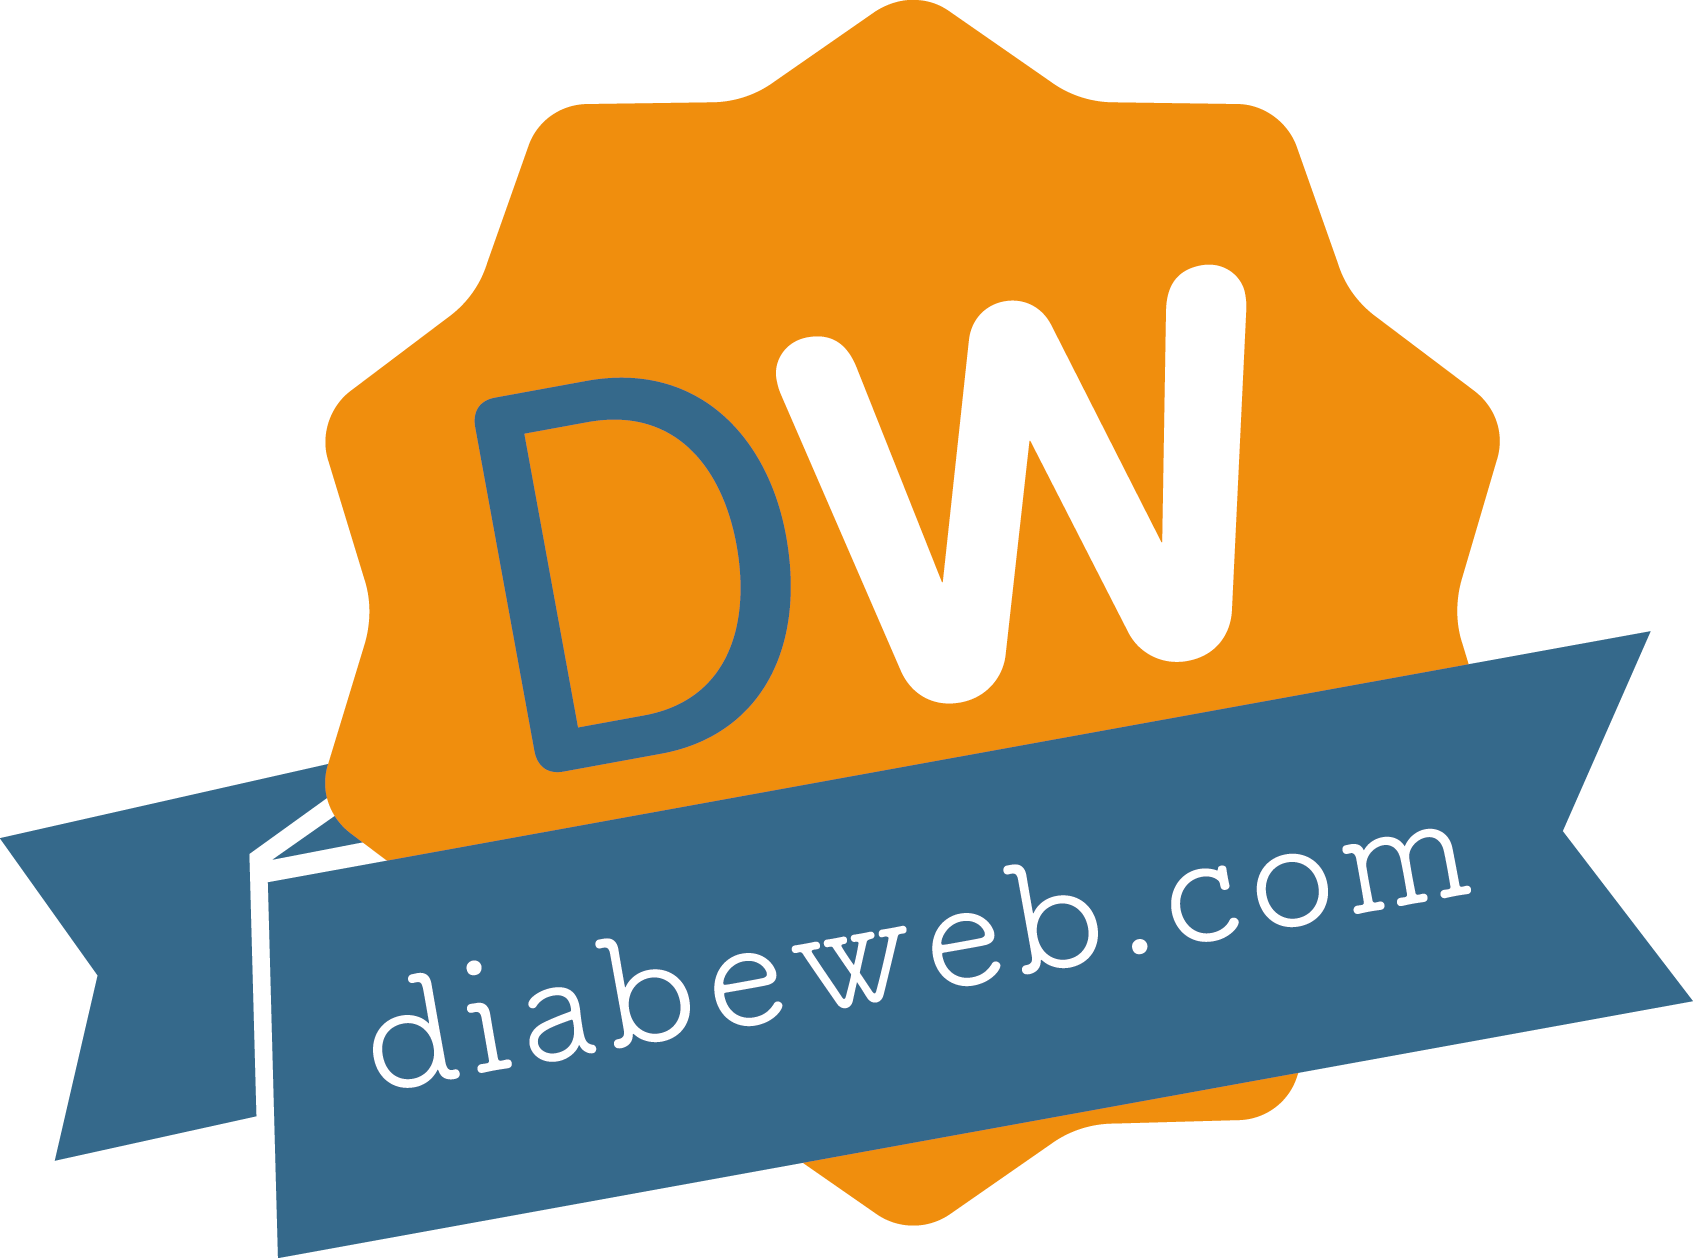 diabeweb software para nutriologos